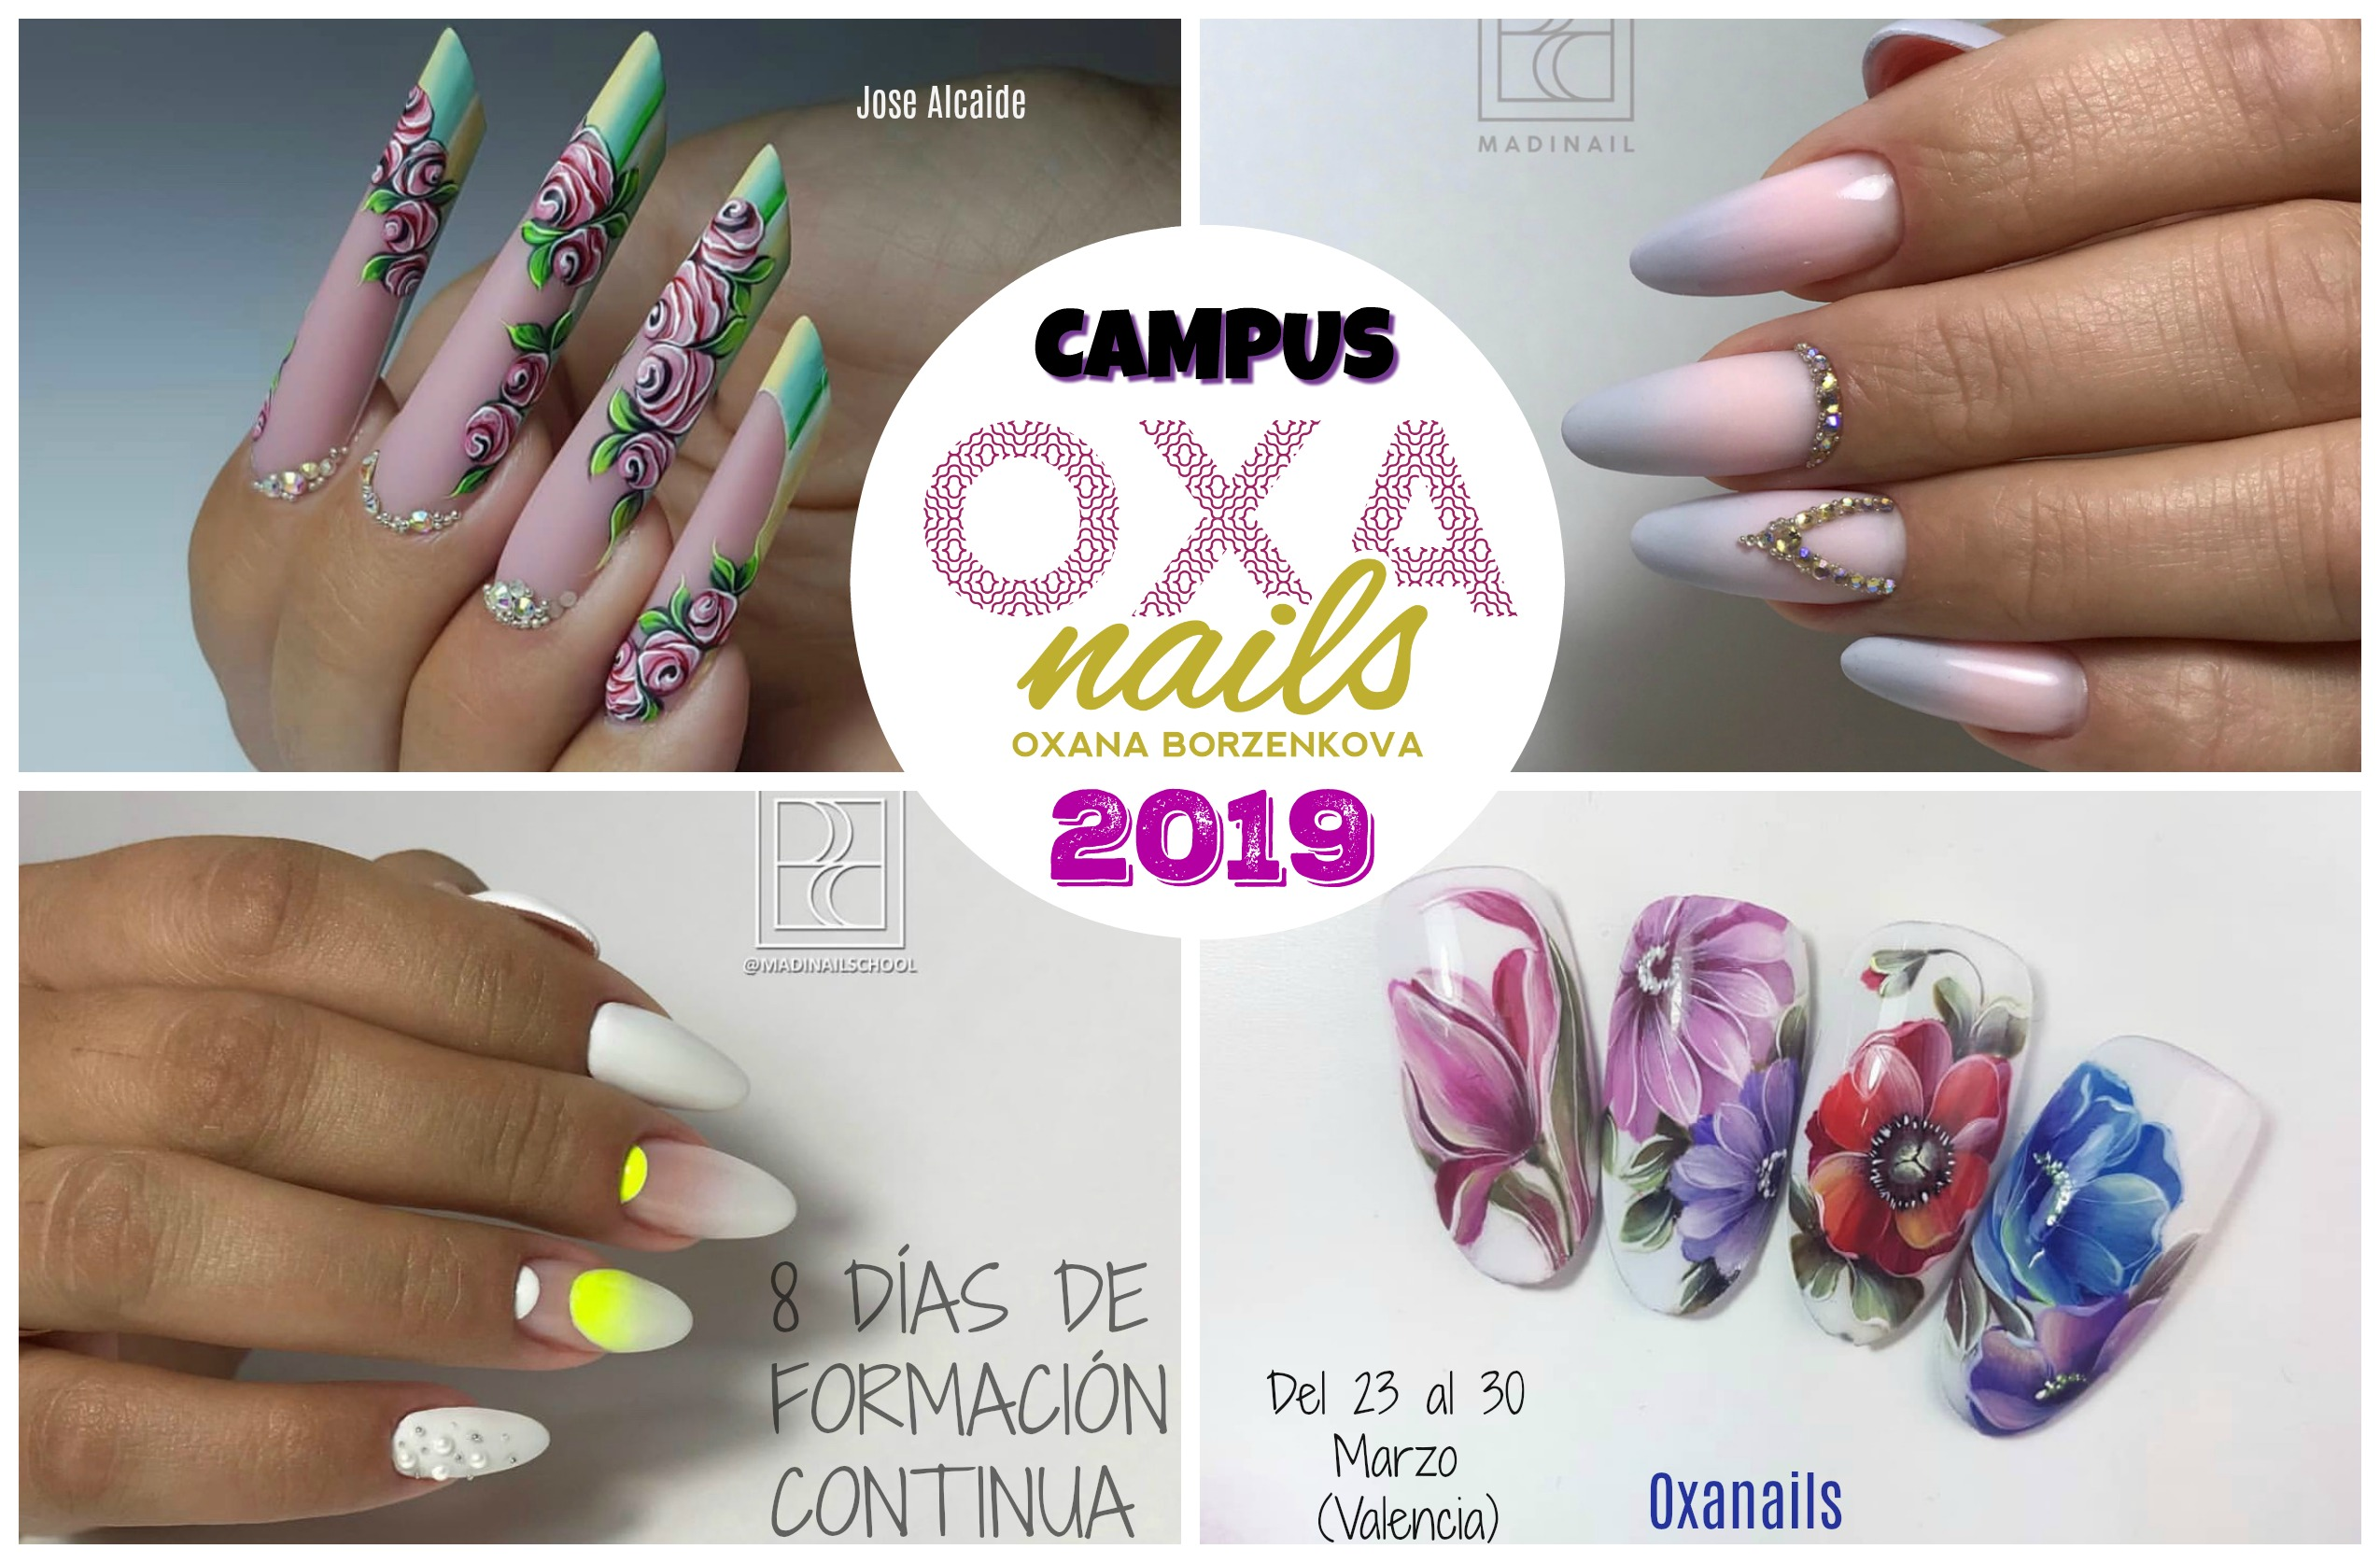 Campus Internacional Oxa Nails 2019